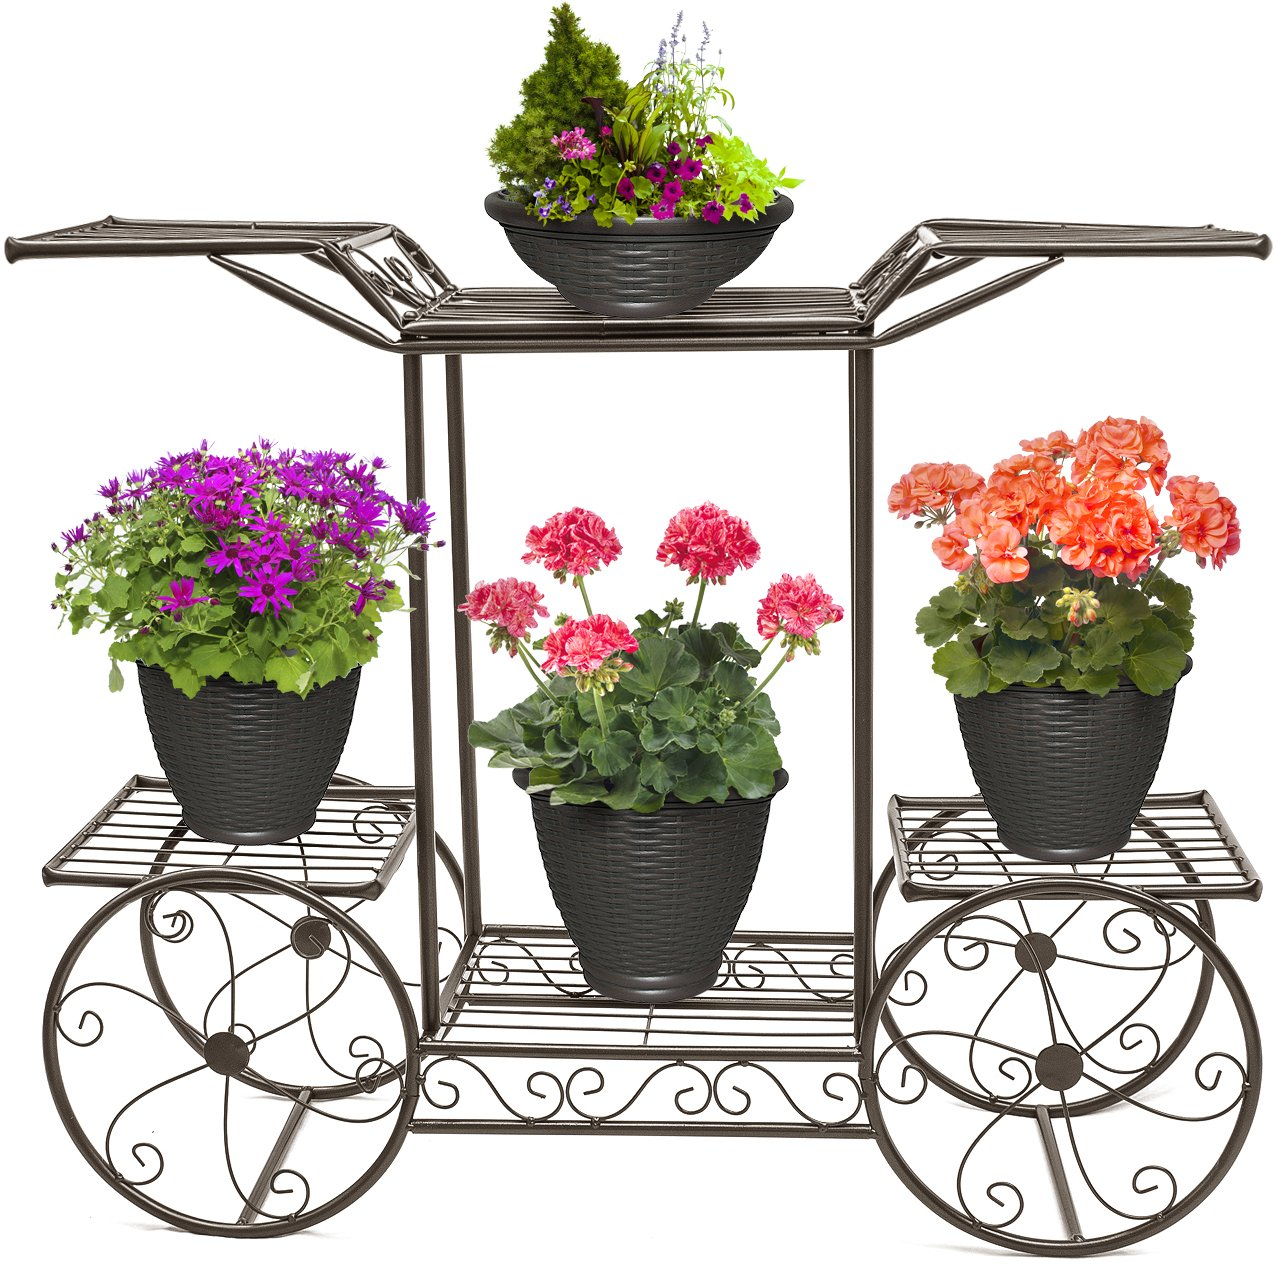 Sorbus Garden Cart Stand & Flower Pot Plant Holder Display Rack, 6 Tiers, Parisian Style - Perfect for Home, Garden, Patio (Bronze) by Sorbus